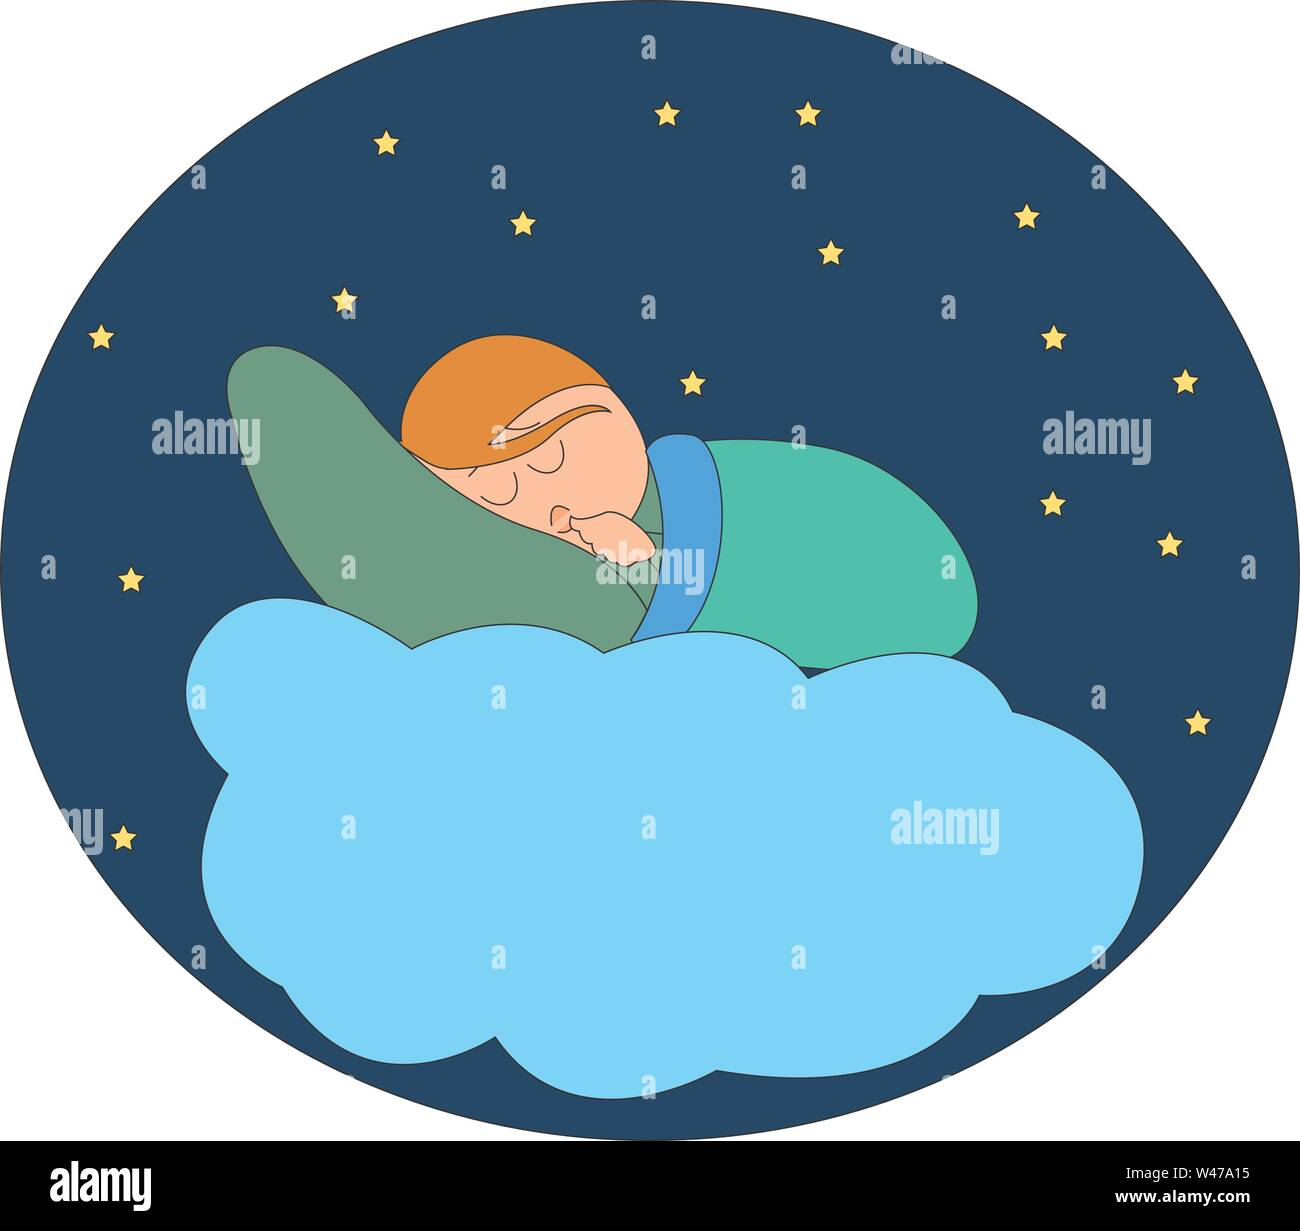 Sleep in the clouds, illustration, vector on white background. - Stock Image